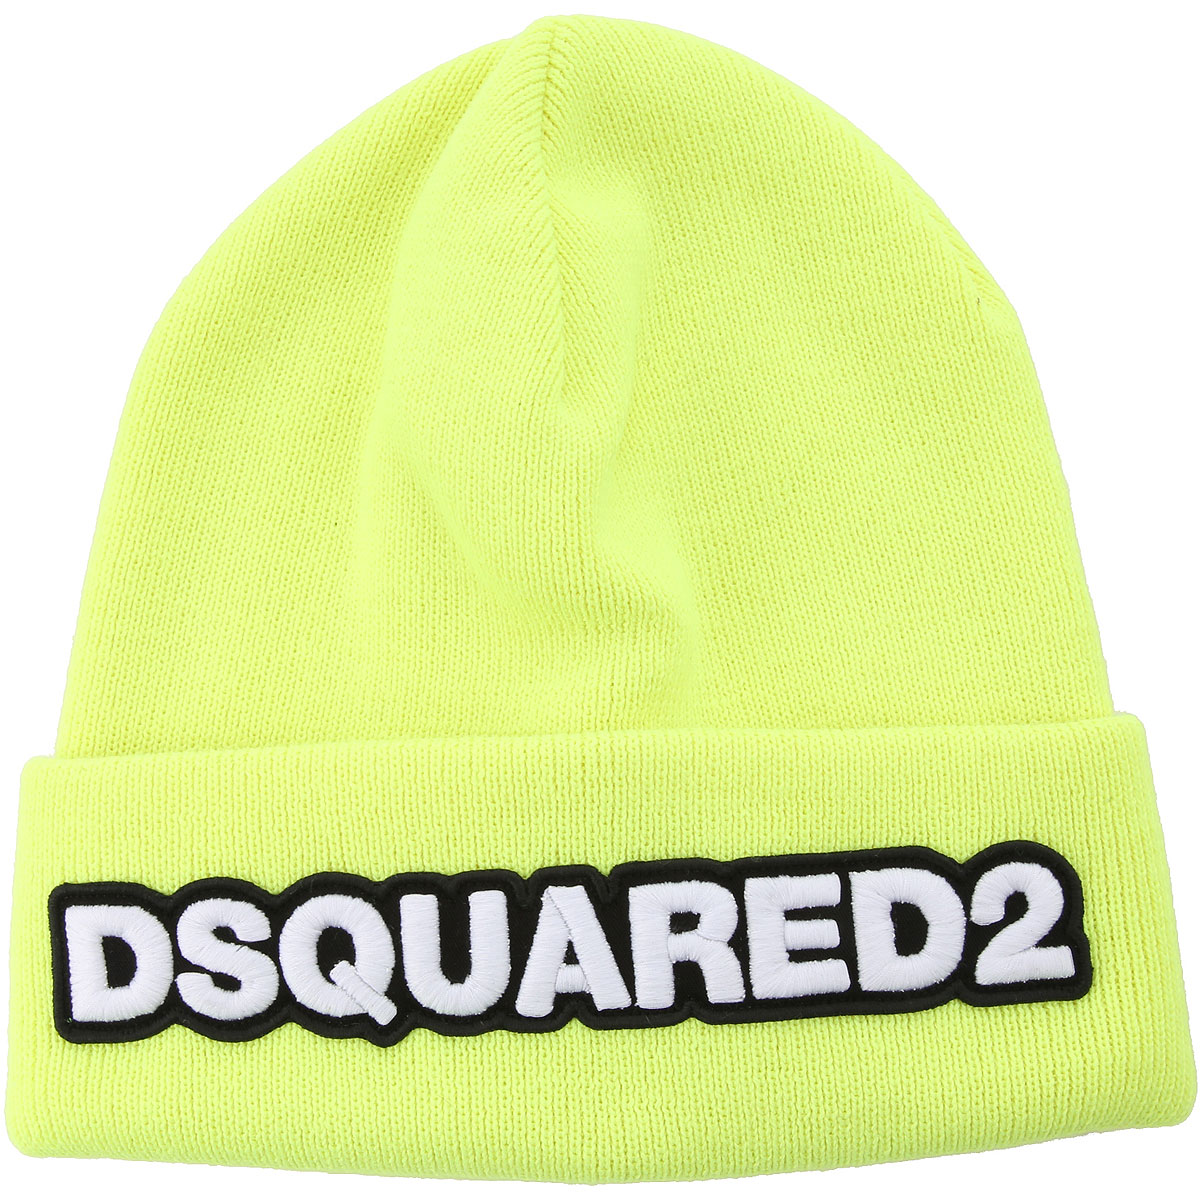 Dsquared2 Hat for Women fluo yellow SE - GOOFASH